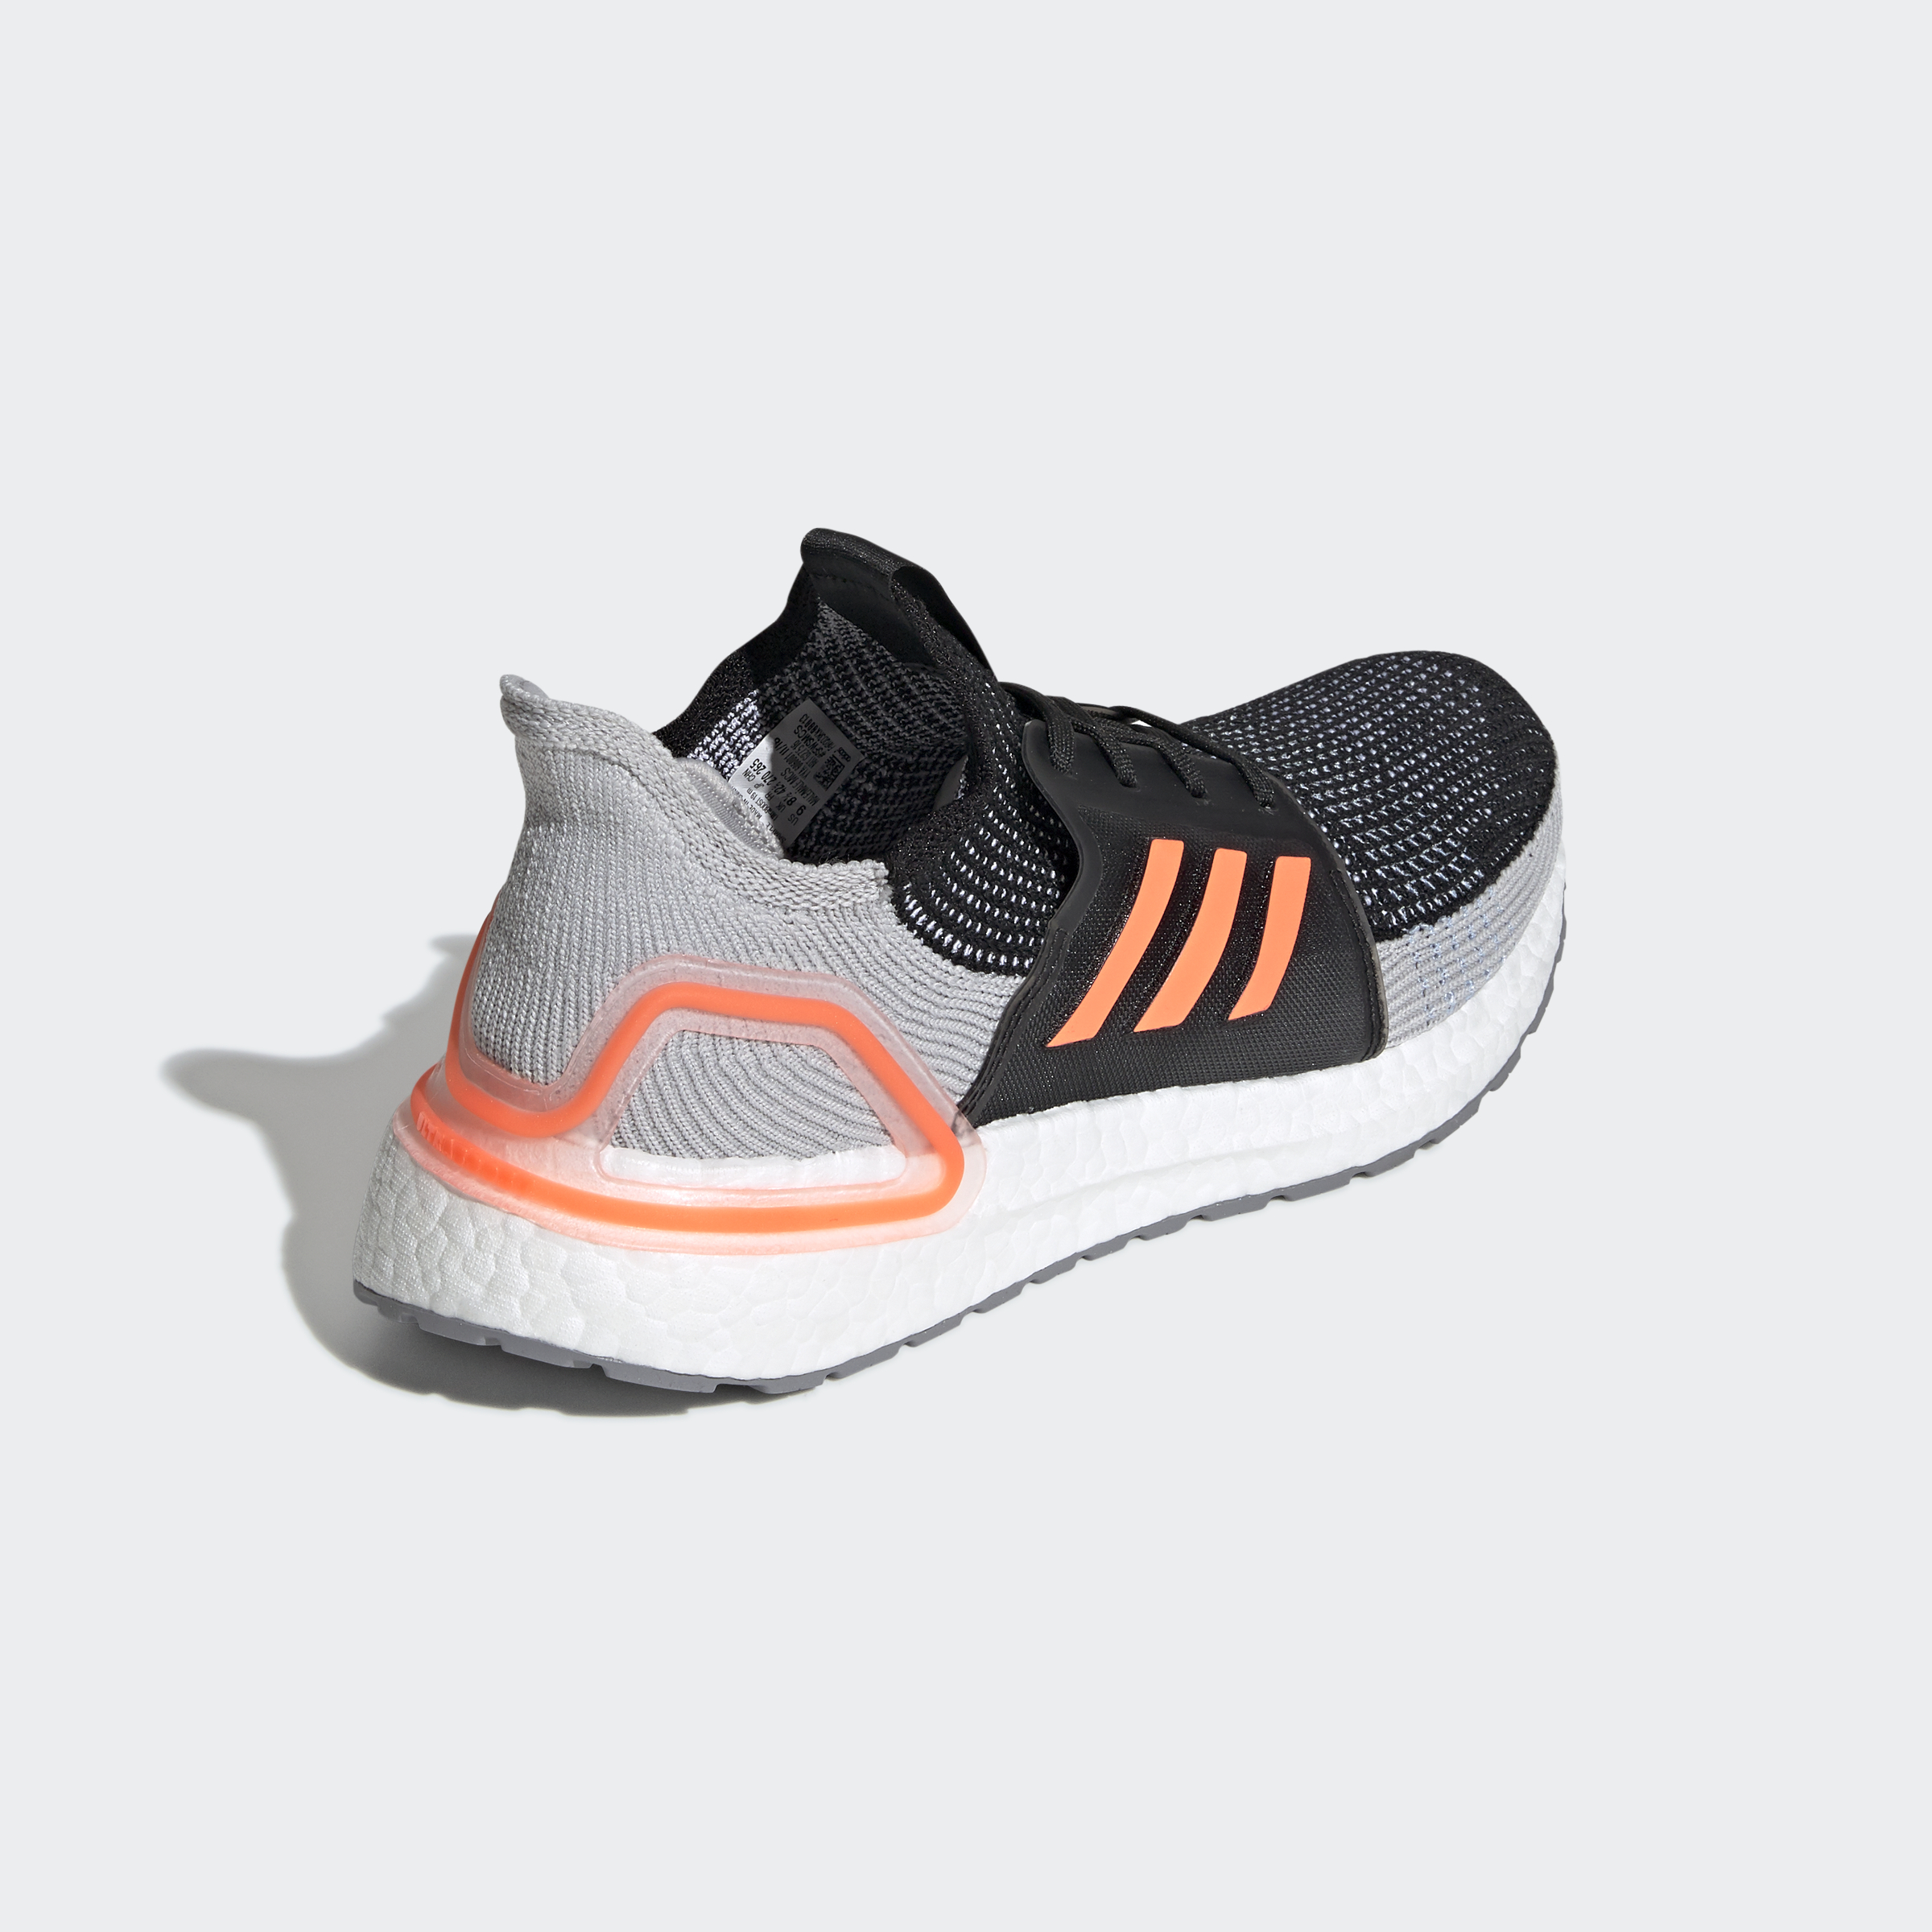 adidas-Ultraboost-19-Shoes-Athletic-amp-Sneakers thumbnail 123